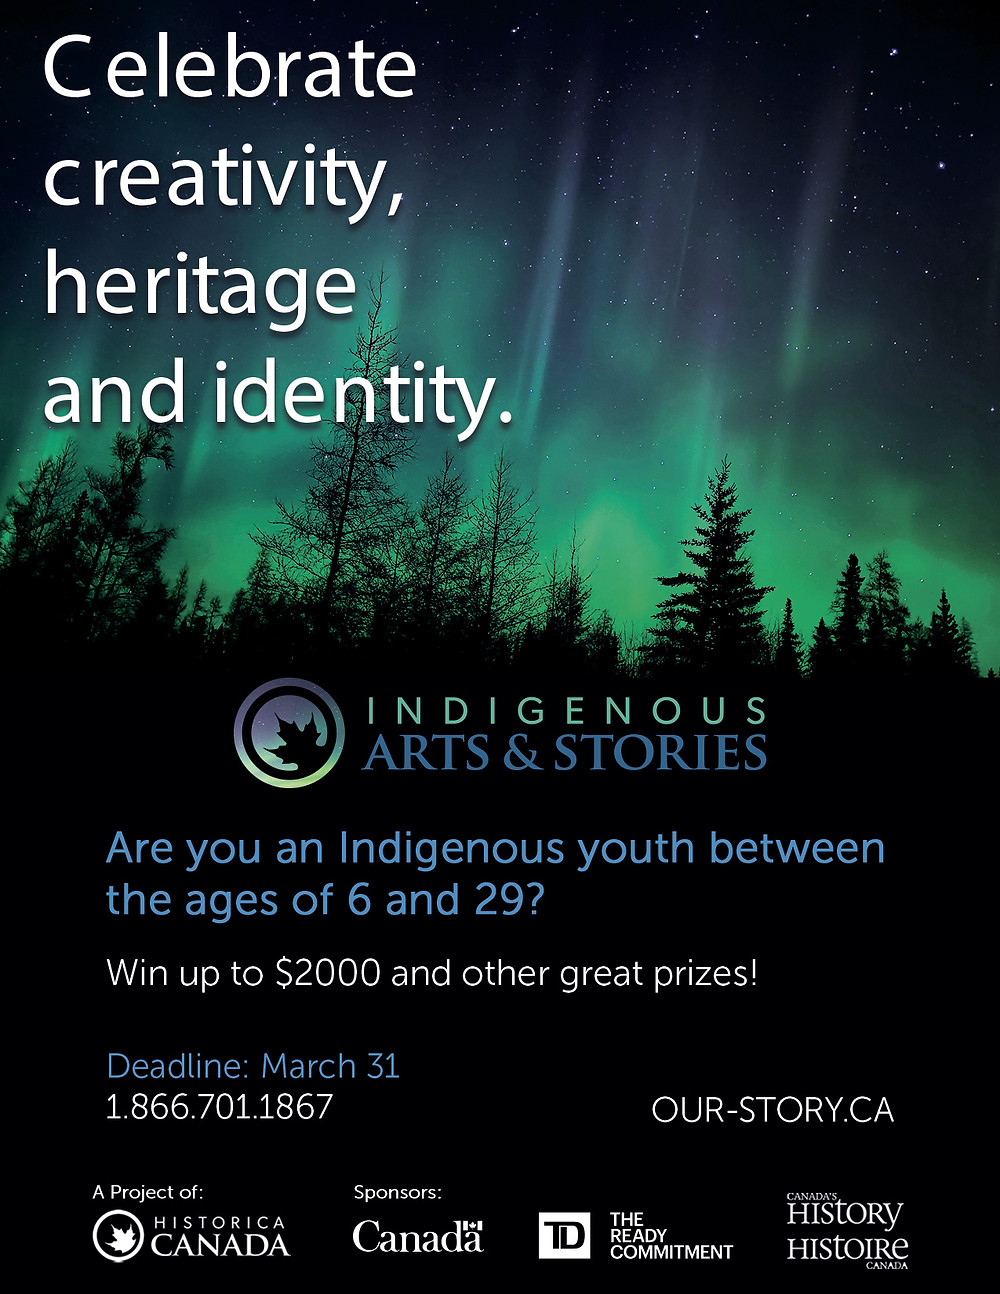 identified Indigenous youth ages 6-29 in Canada. Our contest deadline is coming up on March 31. This contest aims to provide an opportunity towards cultural revitalization among Indigenous youth, as well as a national platform for expression. Youth are encouraged to submit pieces exploring Indigenous heritage, culture, or identity. Prizes include up to $2000 in cash and a trip to Ottawa to be honoured at the Governor General's History Awards. More information about the contest can be found on our website: our-story.ca